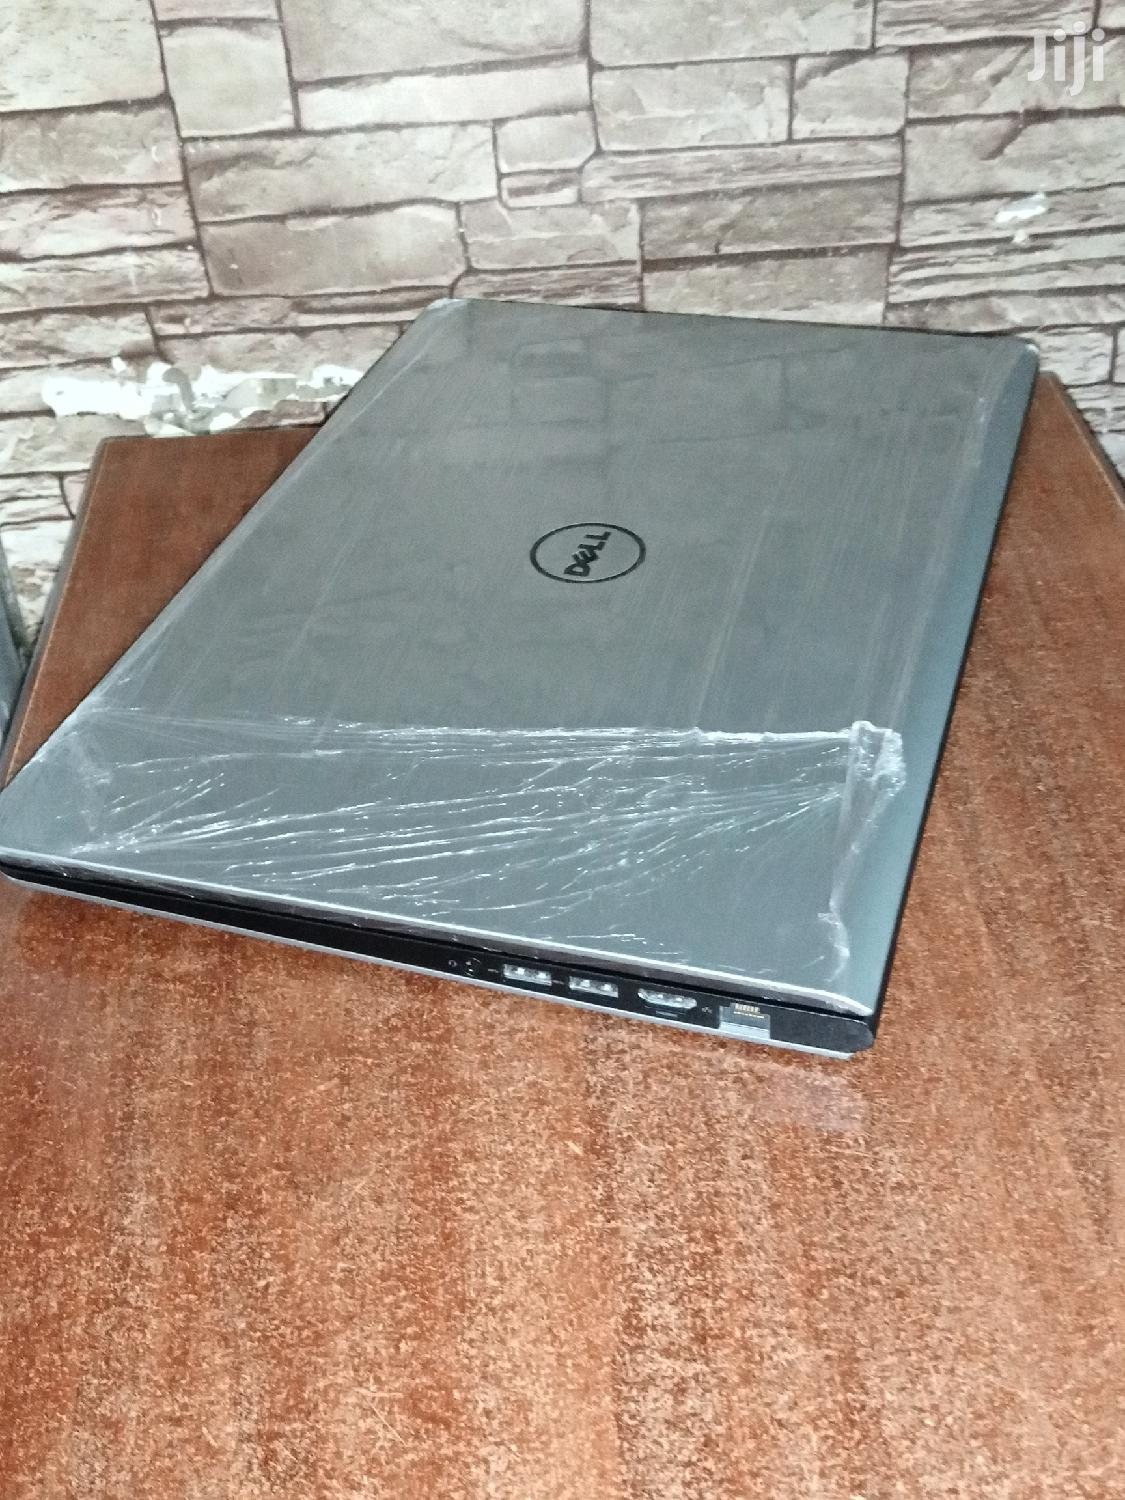 New Laptop Dell Inspiron 15 5547 4GB Intel Core I5 500GB | Laptops & Computers for sale in Nairobi Central, Nairobi, Kenya